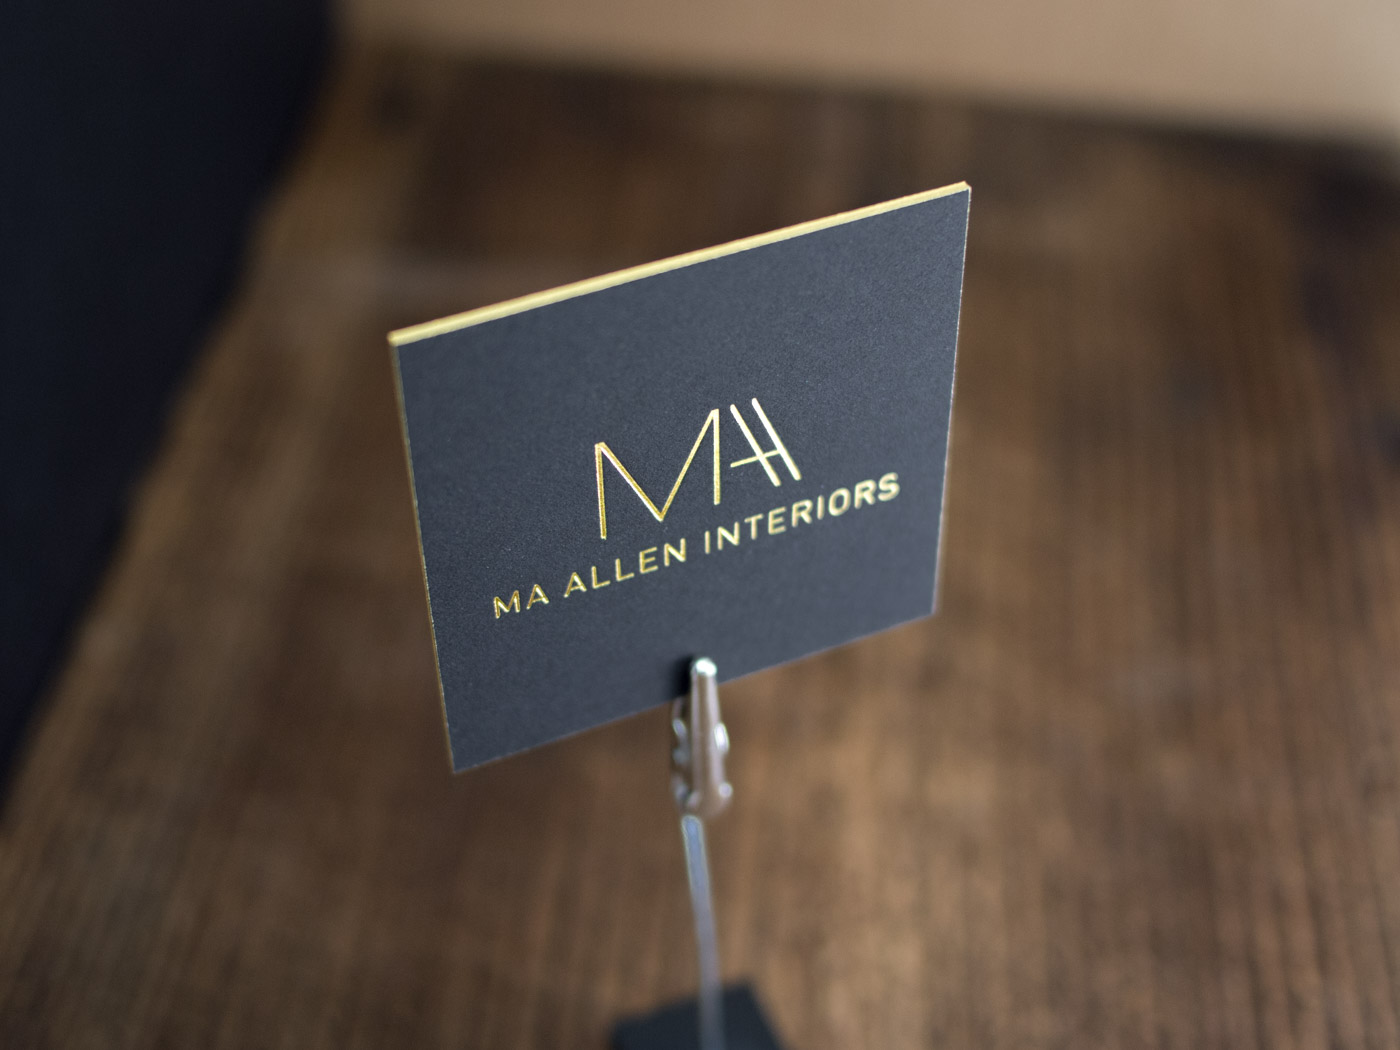 MA Allen Interiors | Printed by Parklife Press